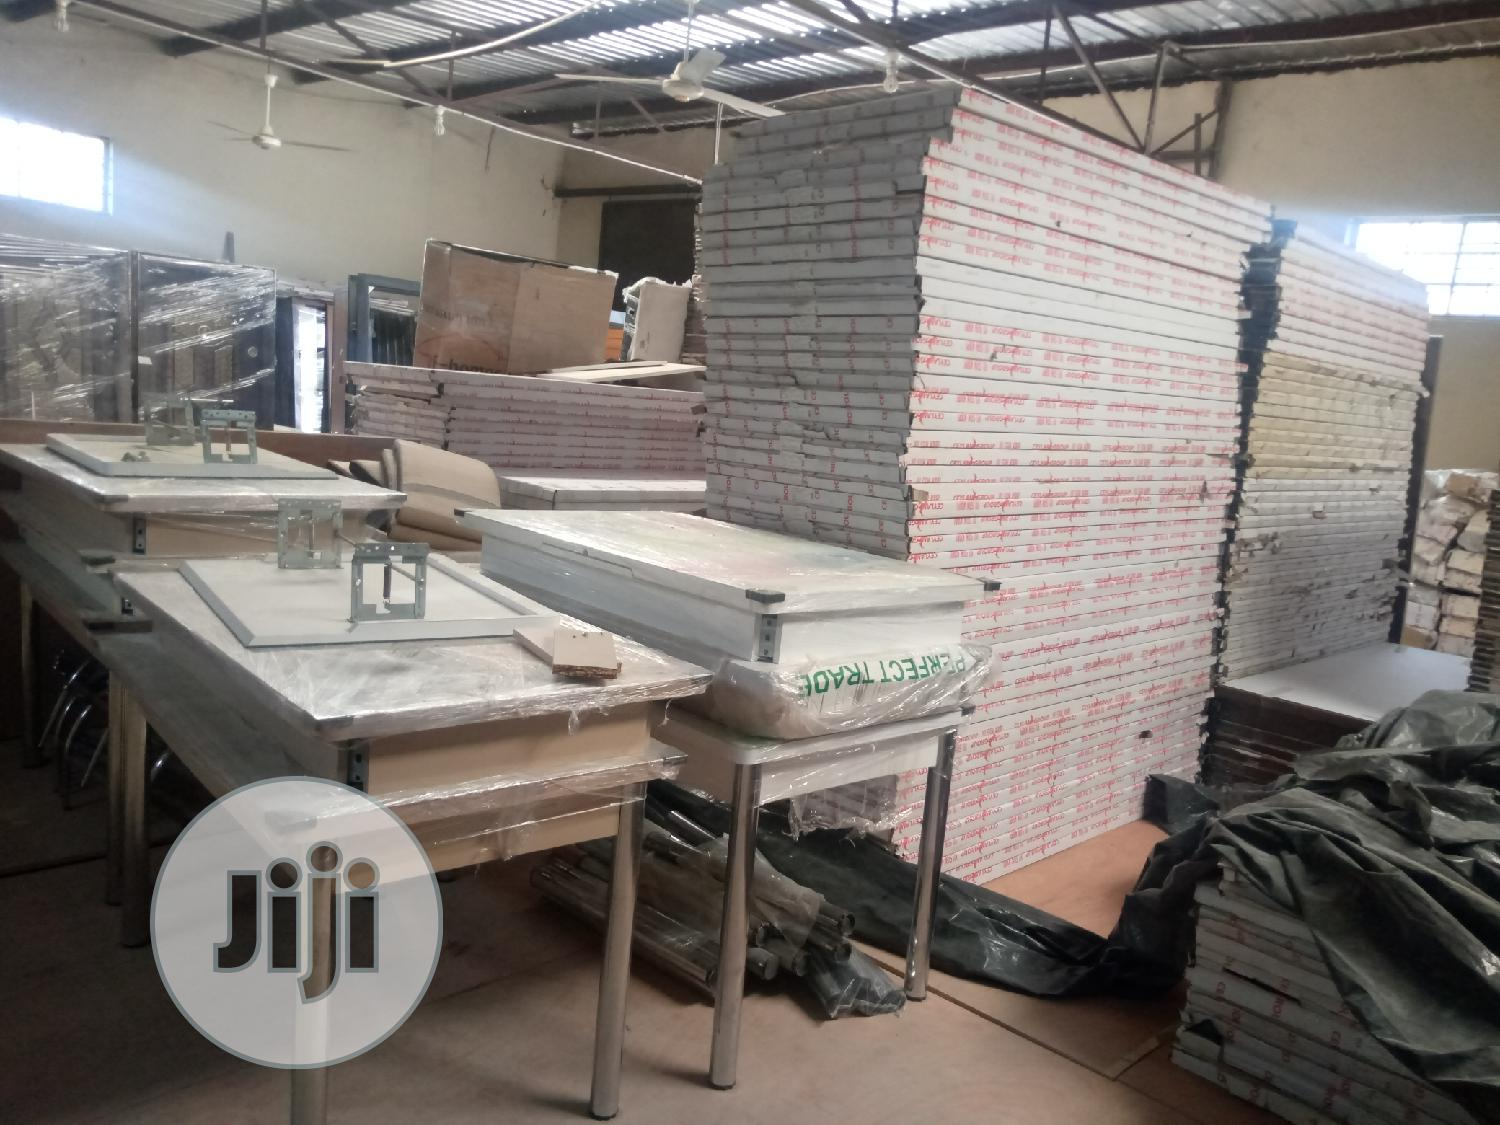 Brandnew Foreign Doors | Doors for sale in Kubwa, Abuja (FCT) State, Nigeria